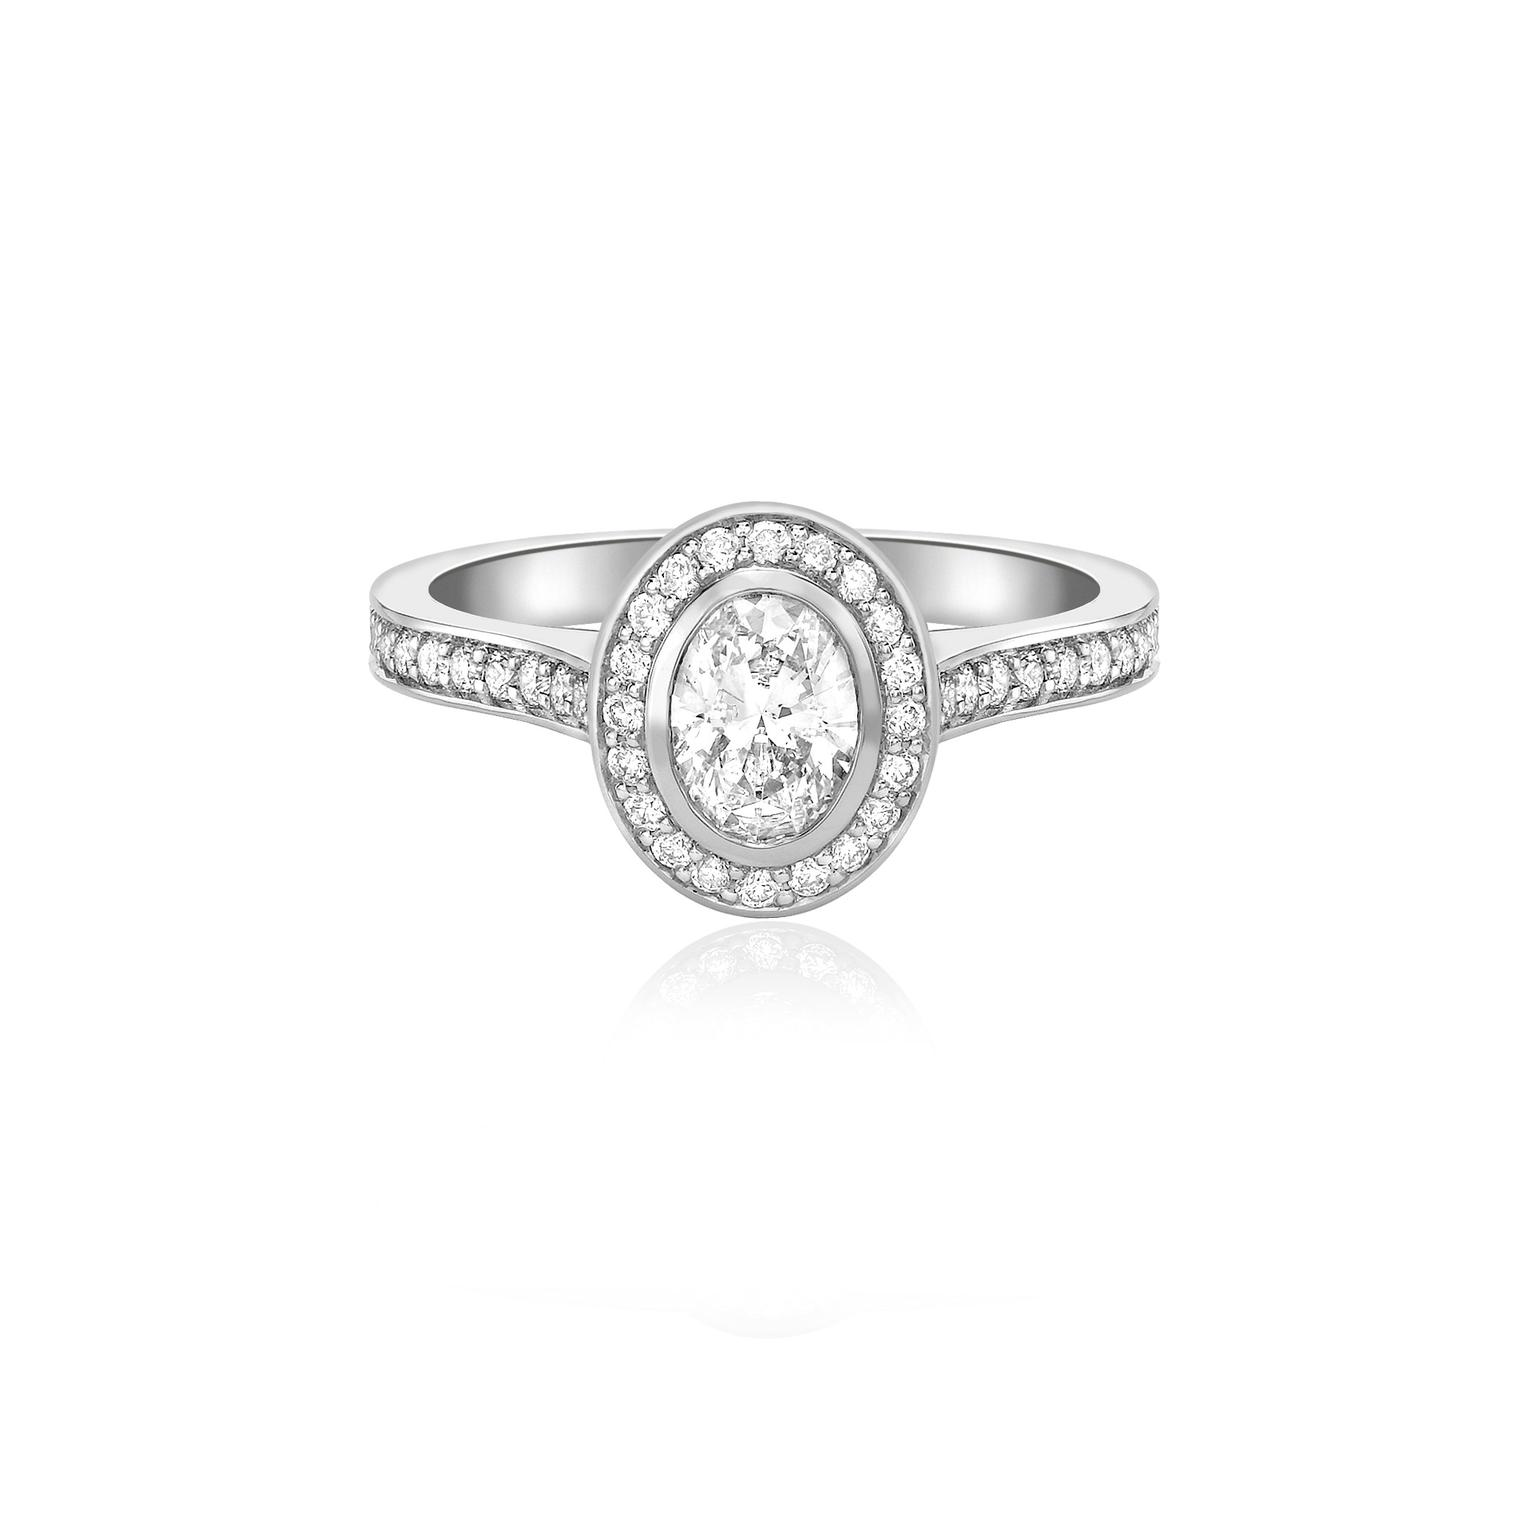 Ingle-&-Rhode-Pavane-diamond-ring-zoom